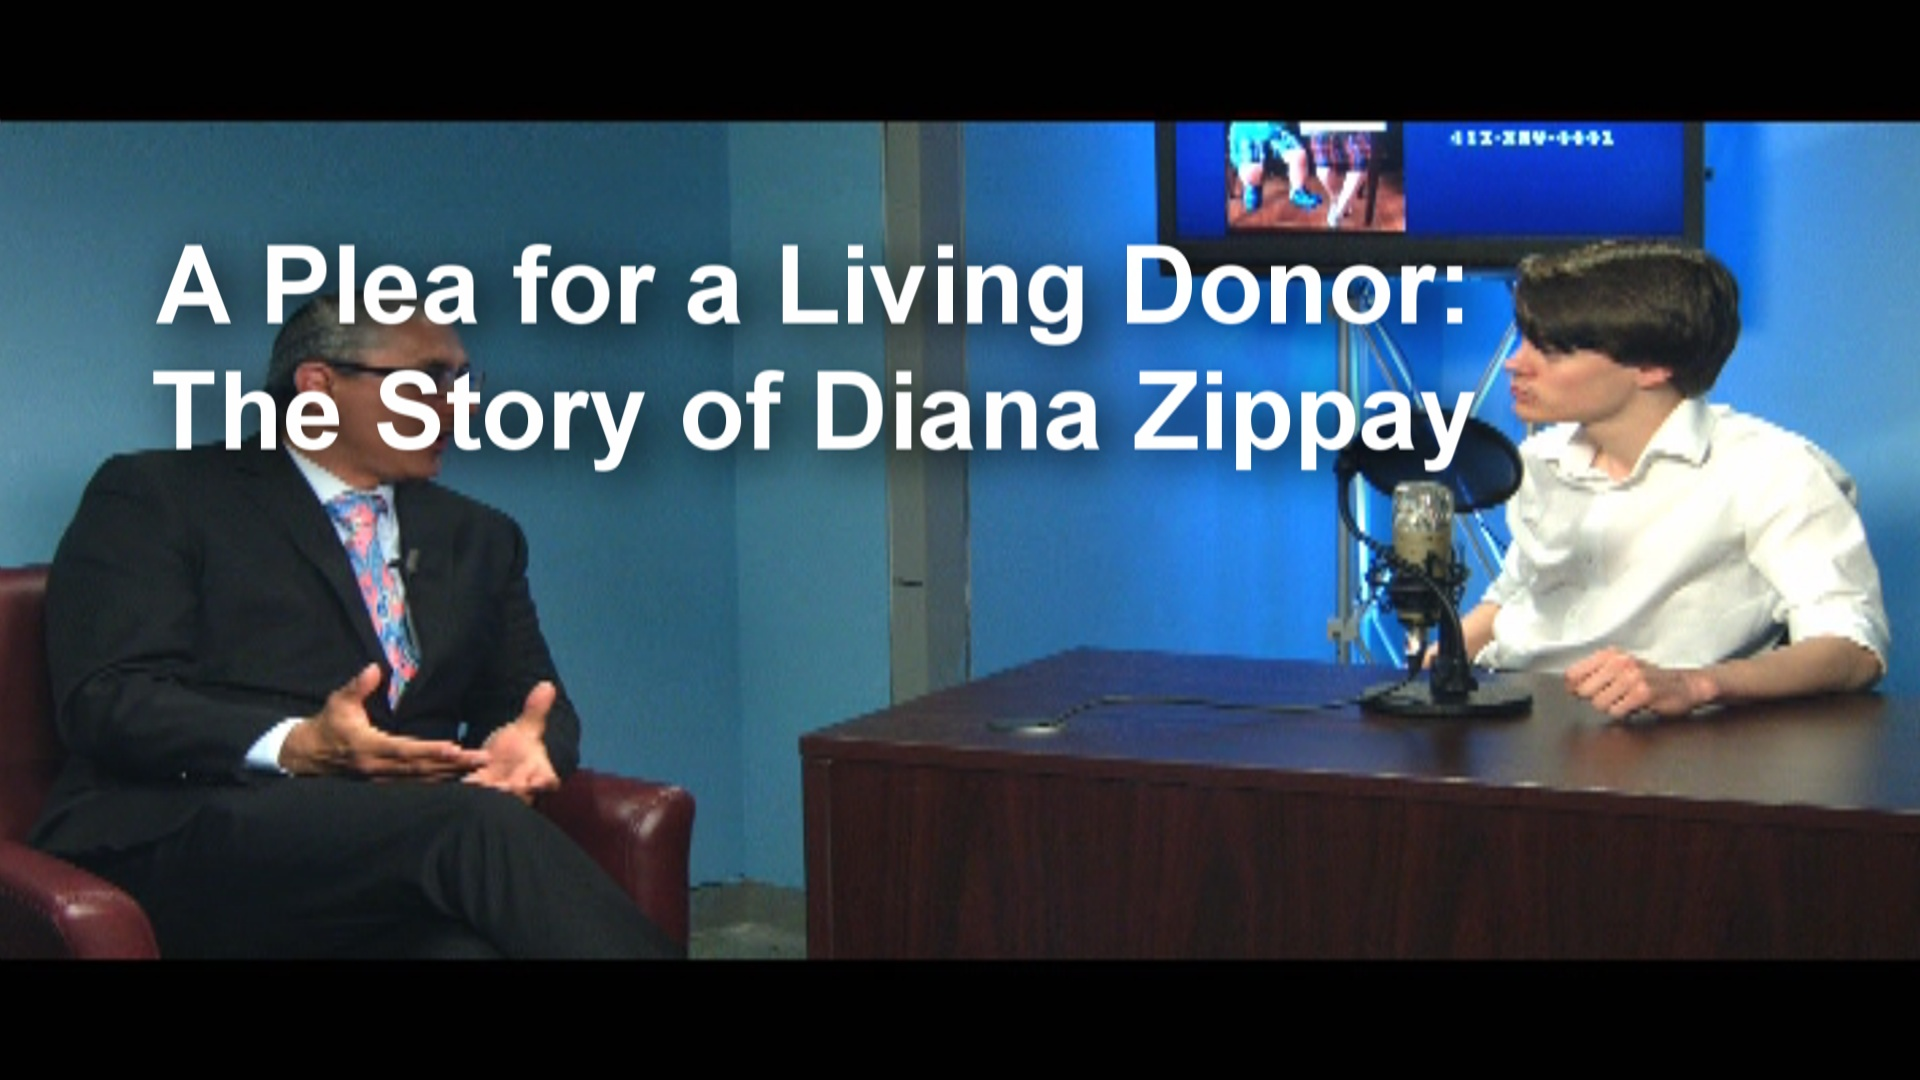 a plea for a living donor.jpg